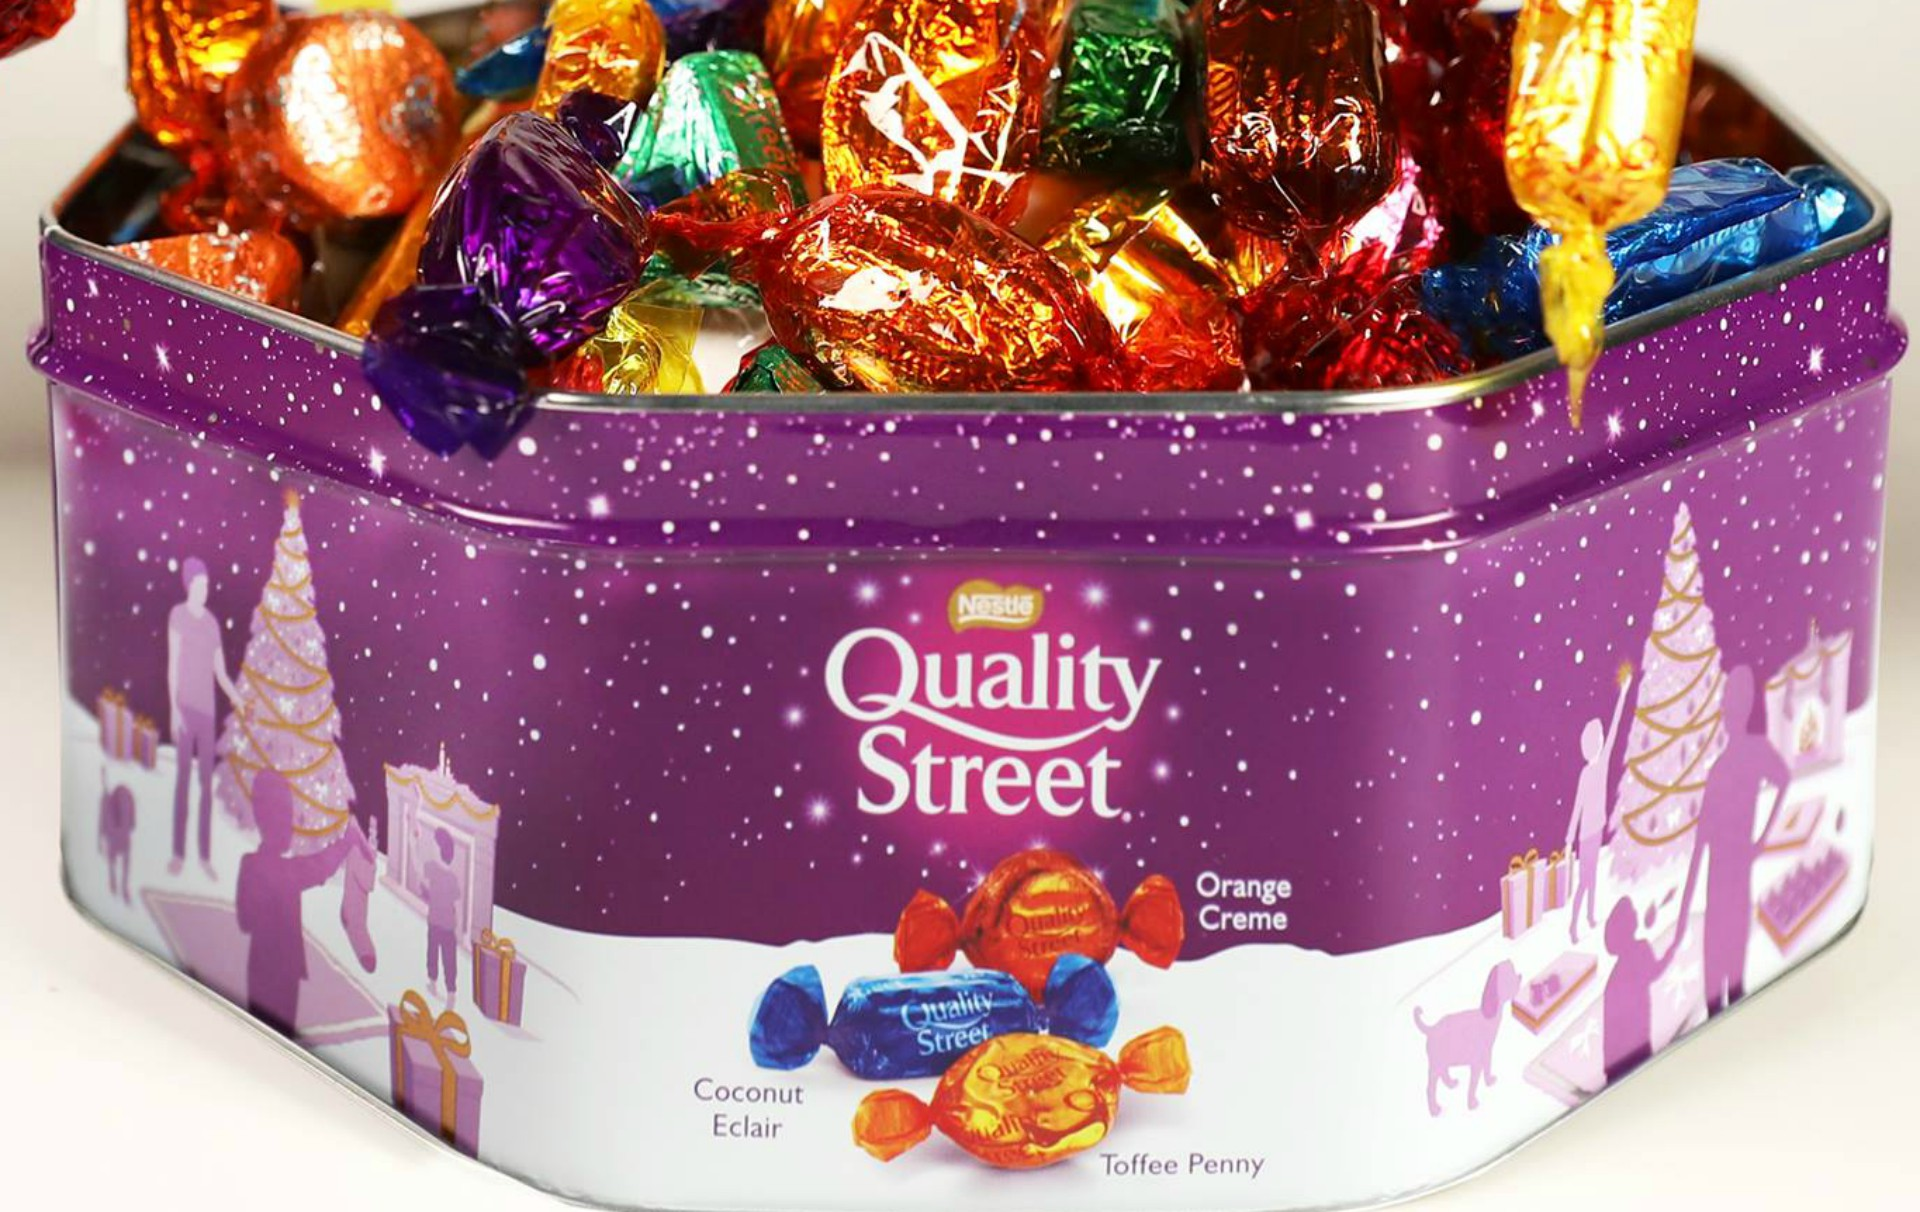 Quality Street fans will not be happy with the missing chocolate in this year's tin